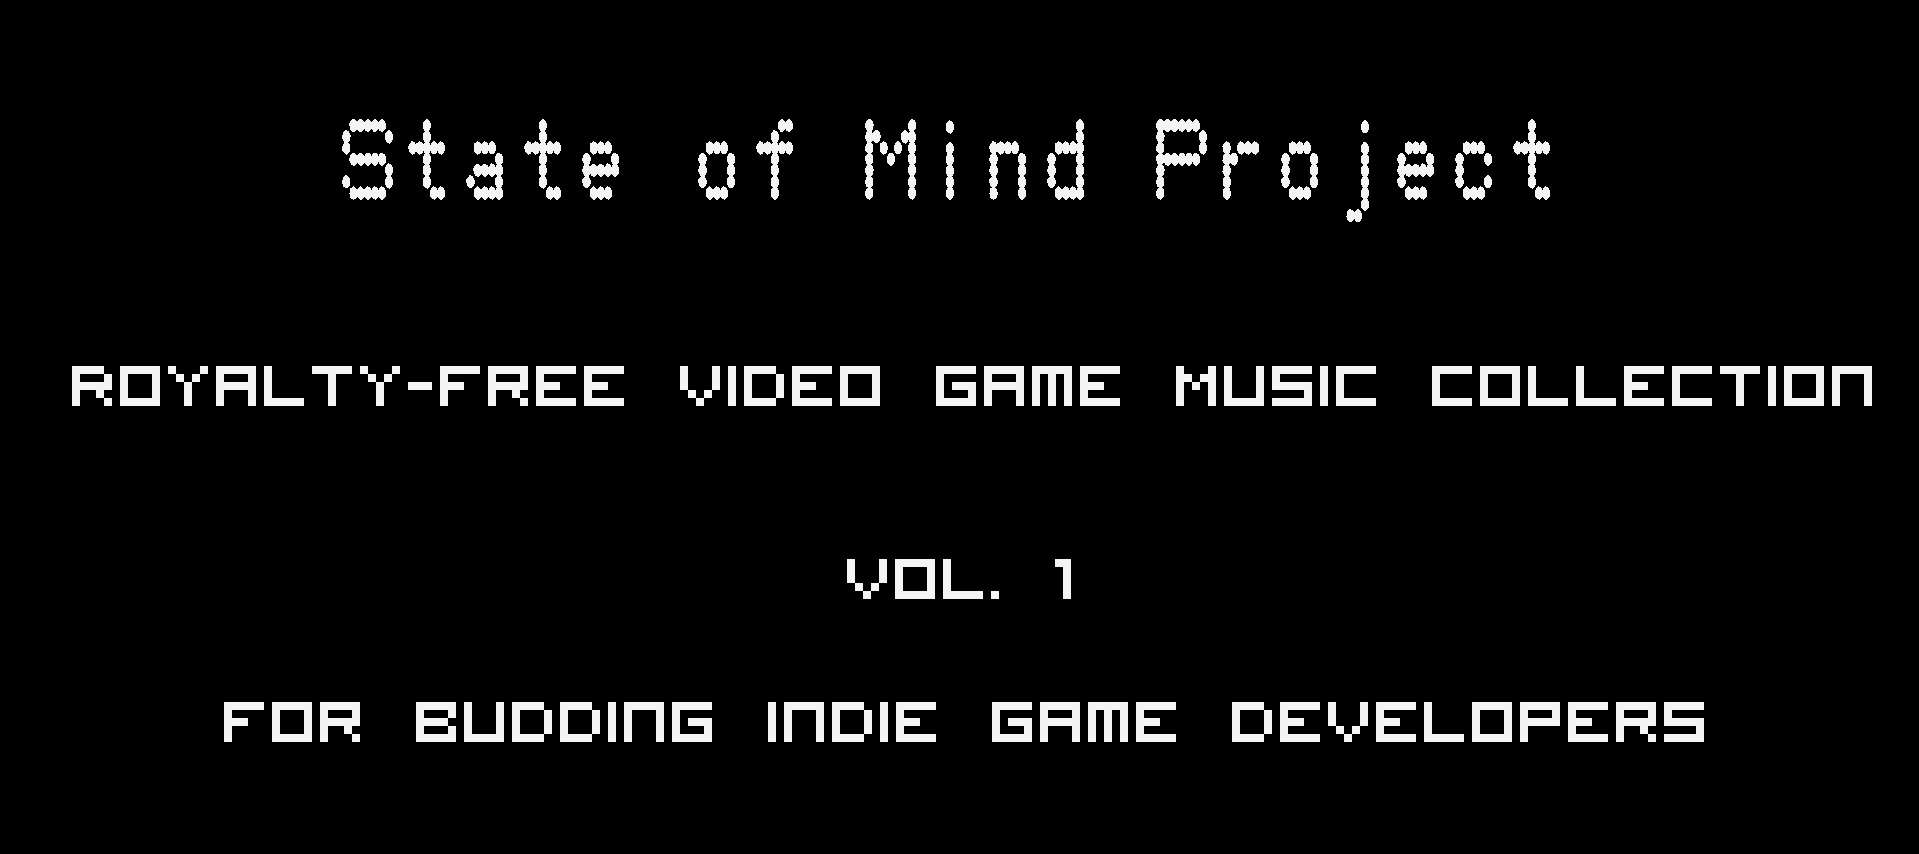 State of Mind - Royalty-Free Game Music Collection Vol. 1